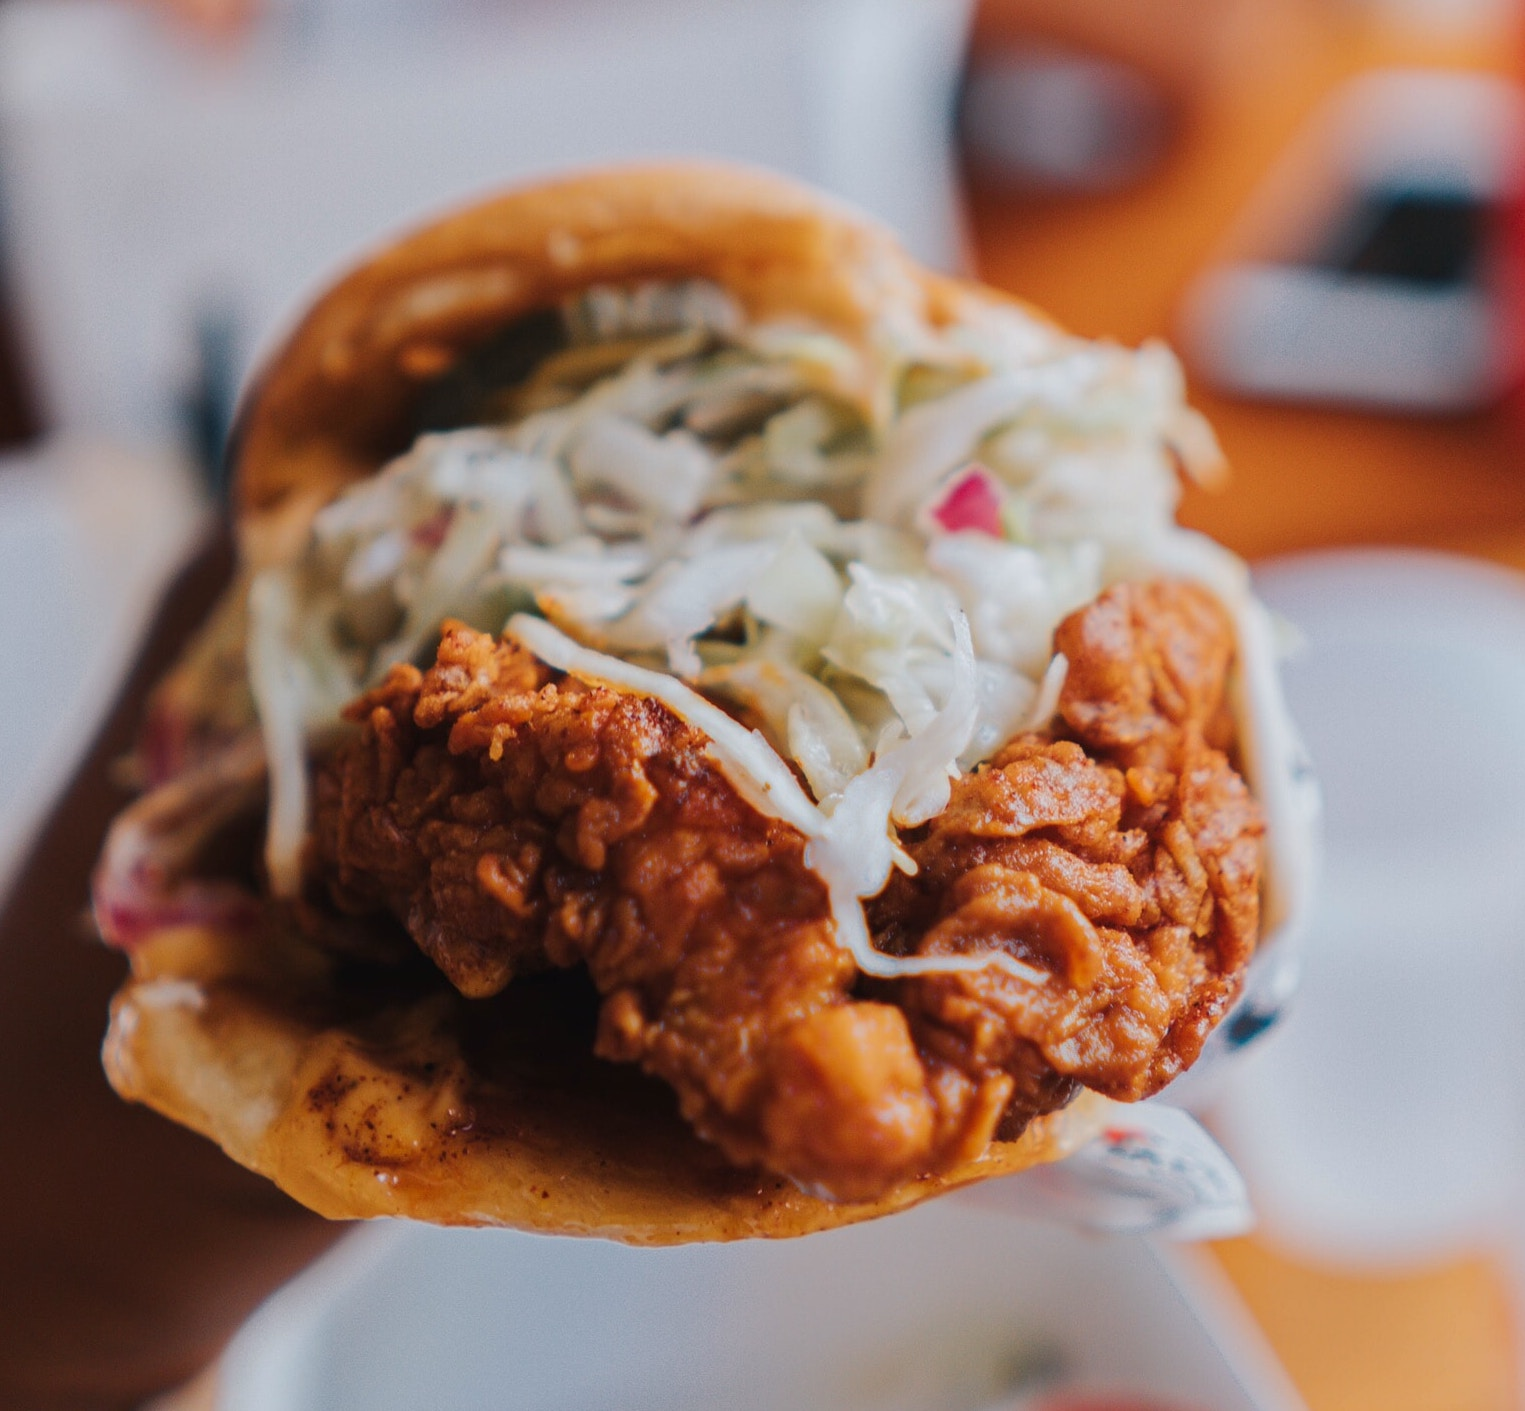 Nashville Hot Chicken Is a Thing, and You Can Make a Lot of It with These Fryers